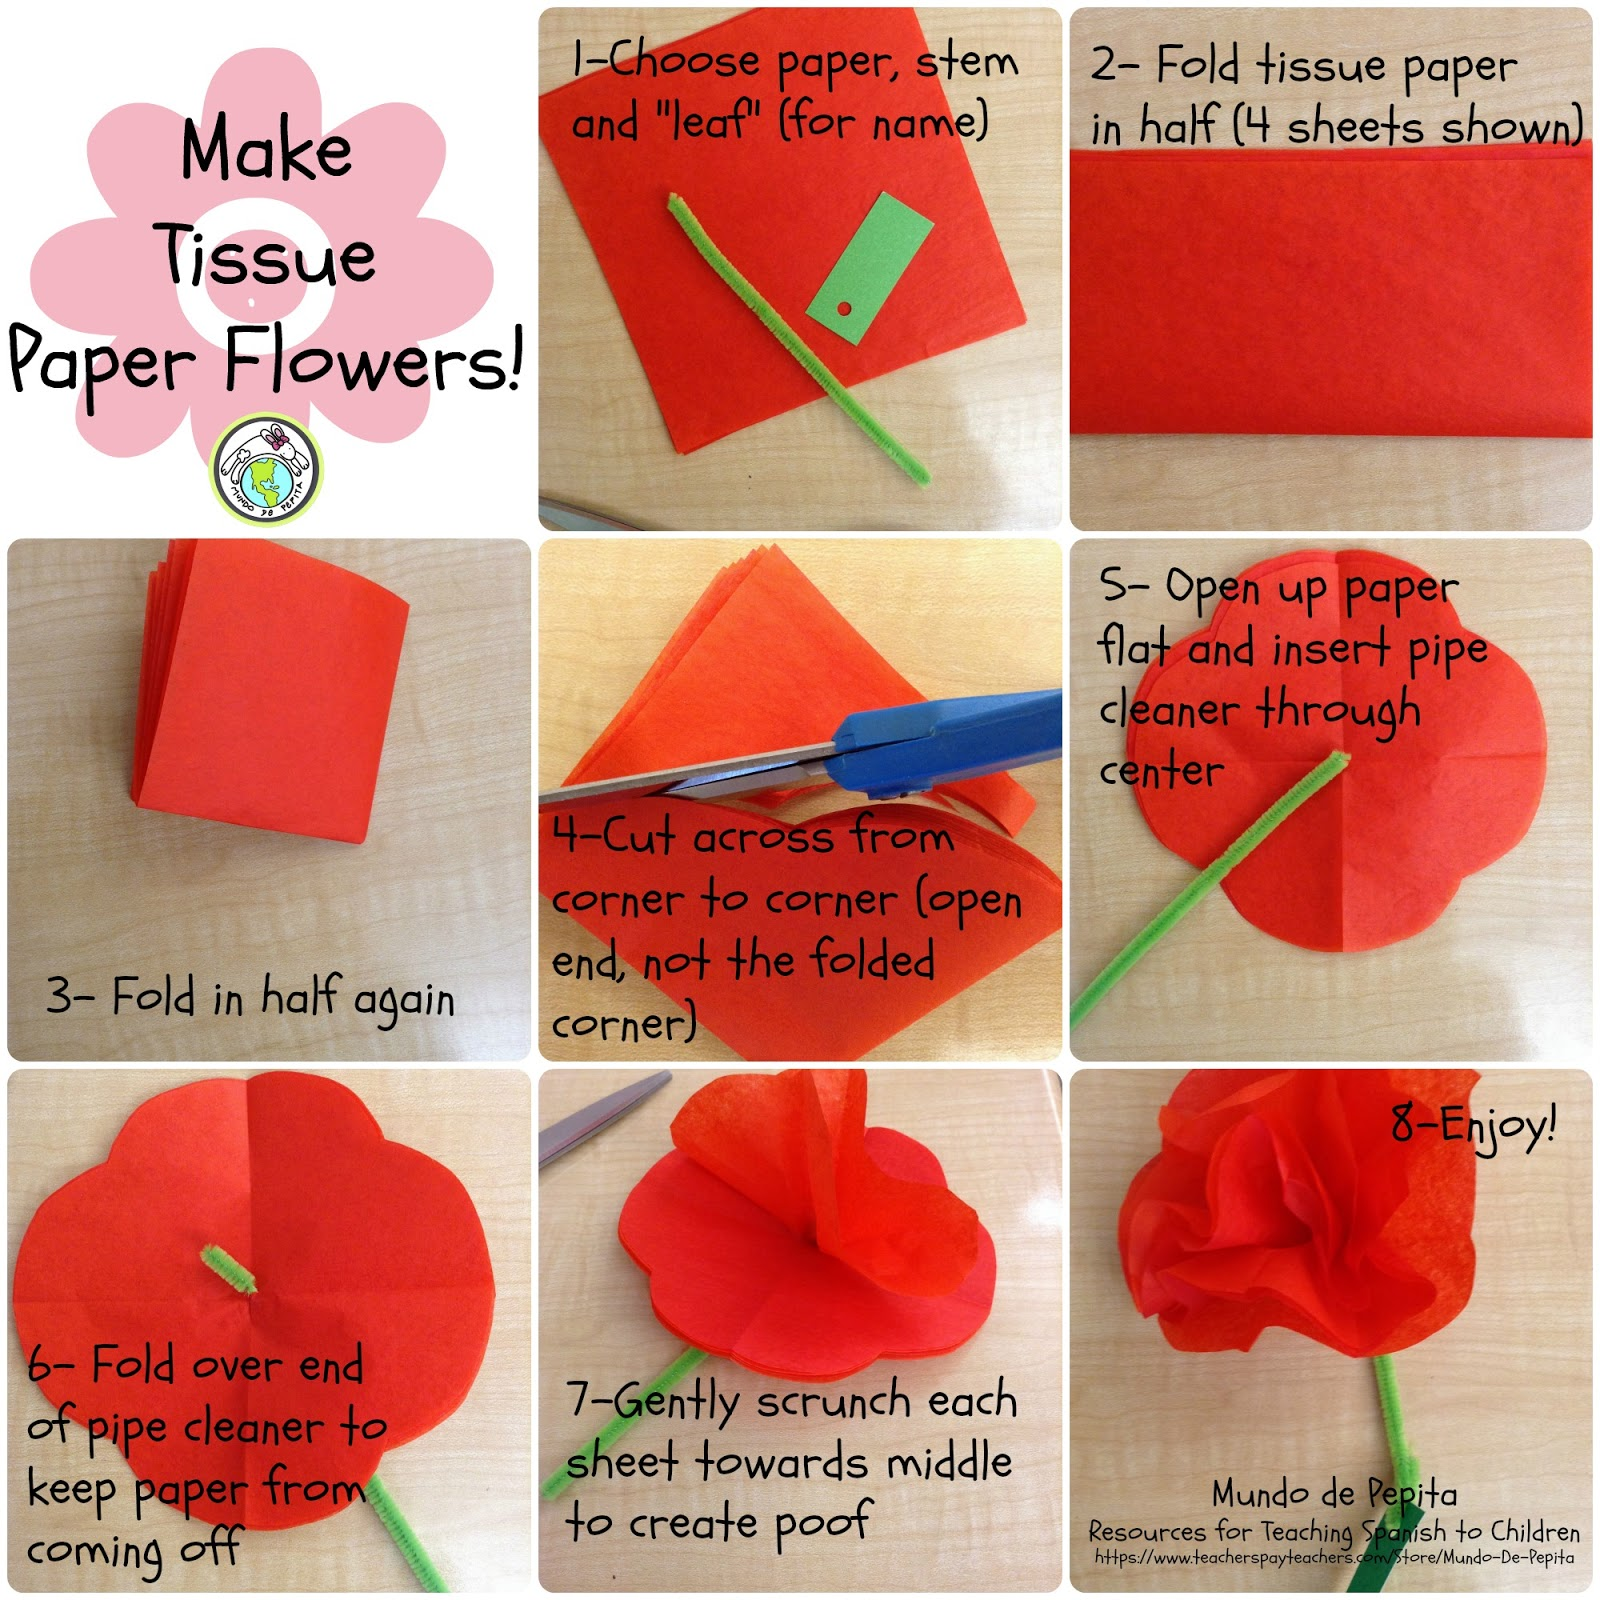 7 Steps For Making Tissue Paper Flowers Mundo De Pepita